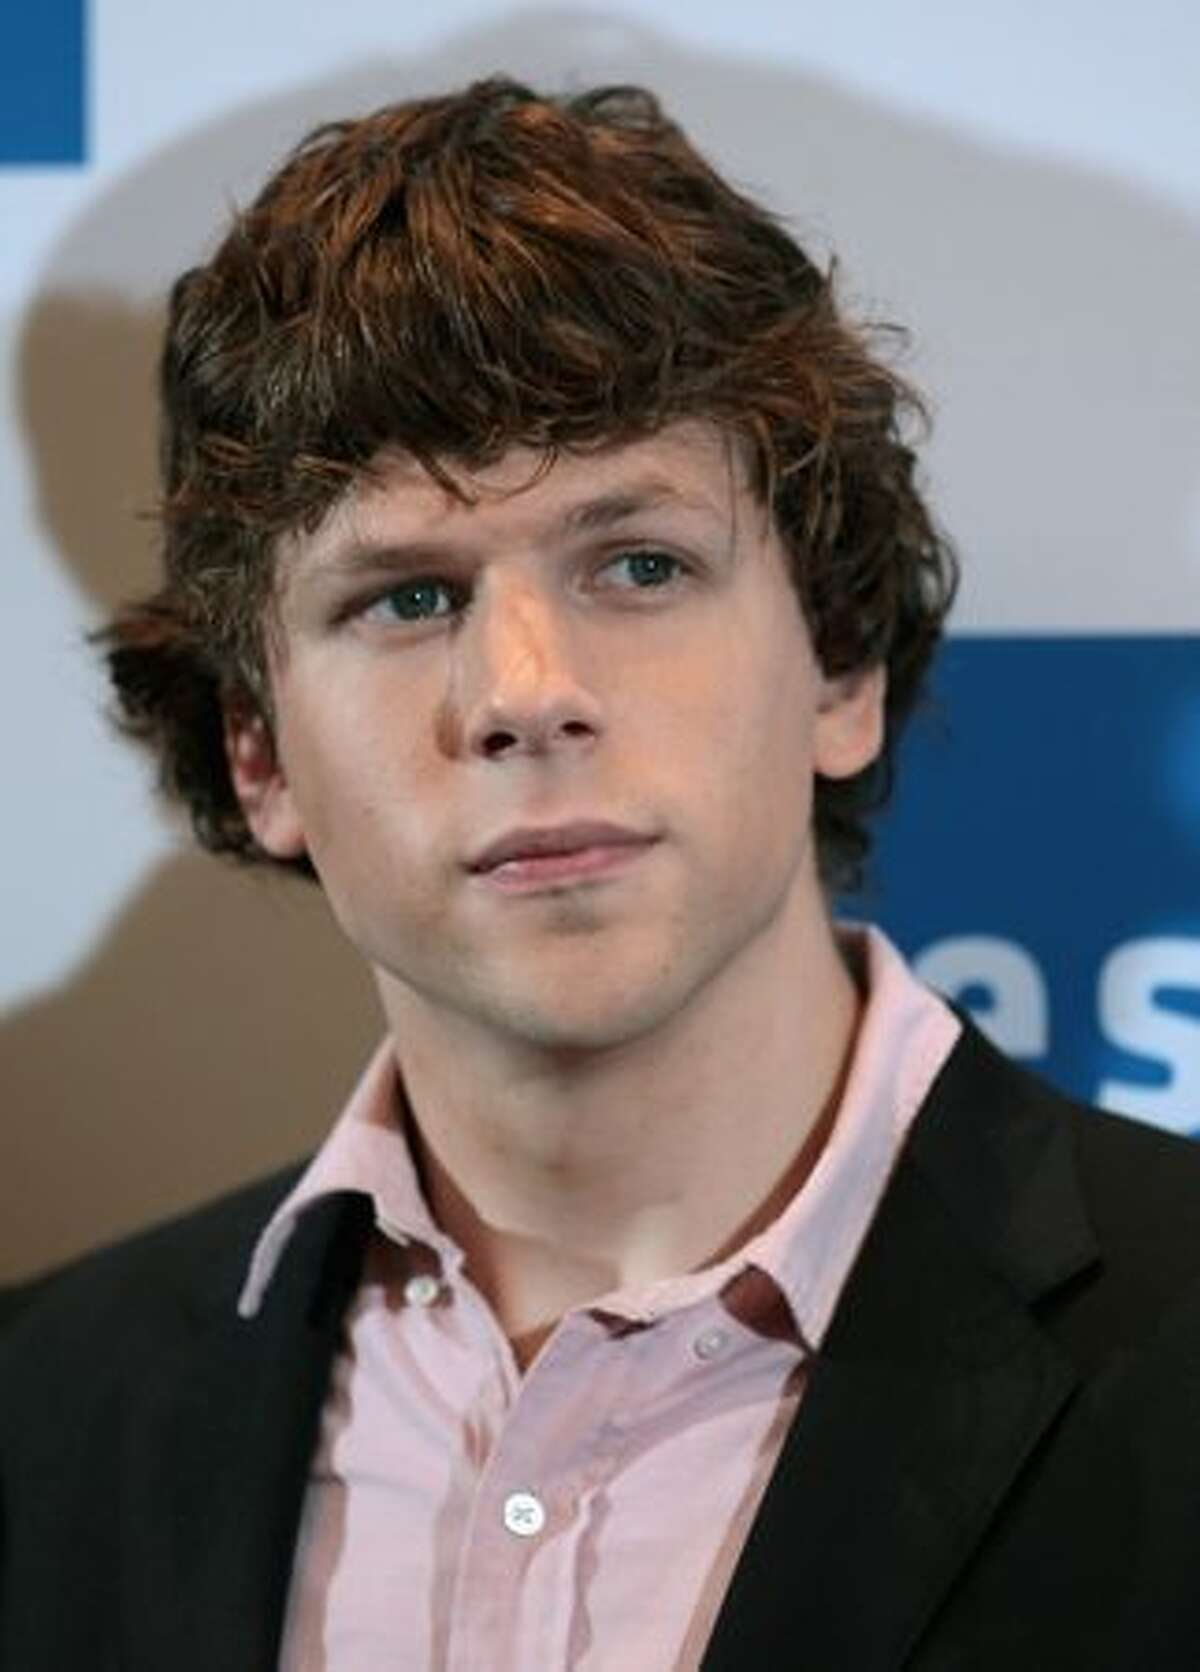 Actor Jesse Eisenberg attends a photocall to promote the film 'The Social Network' at Hotel Adlon on Tuesday in Berlin, Germany.